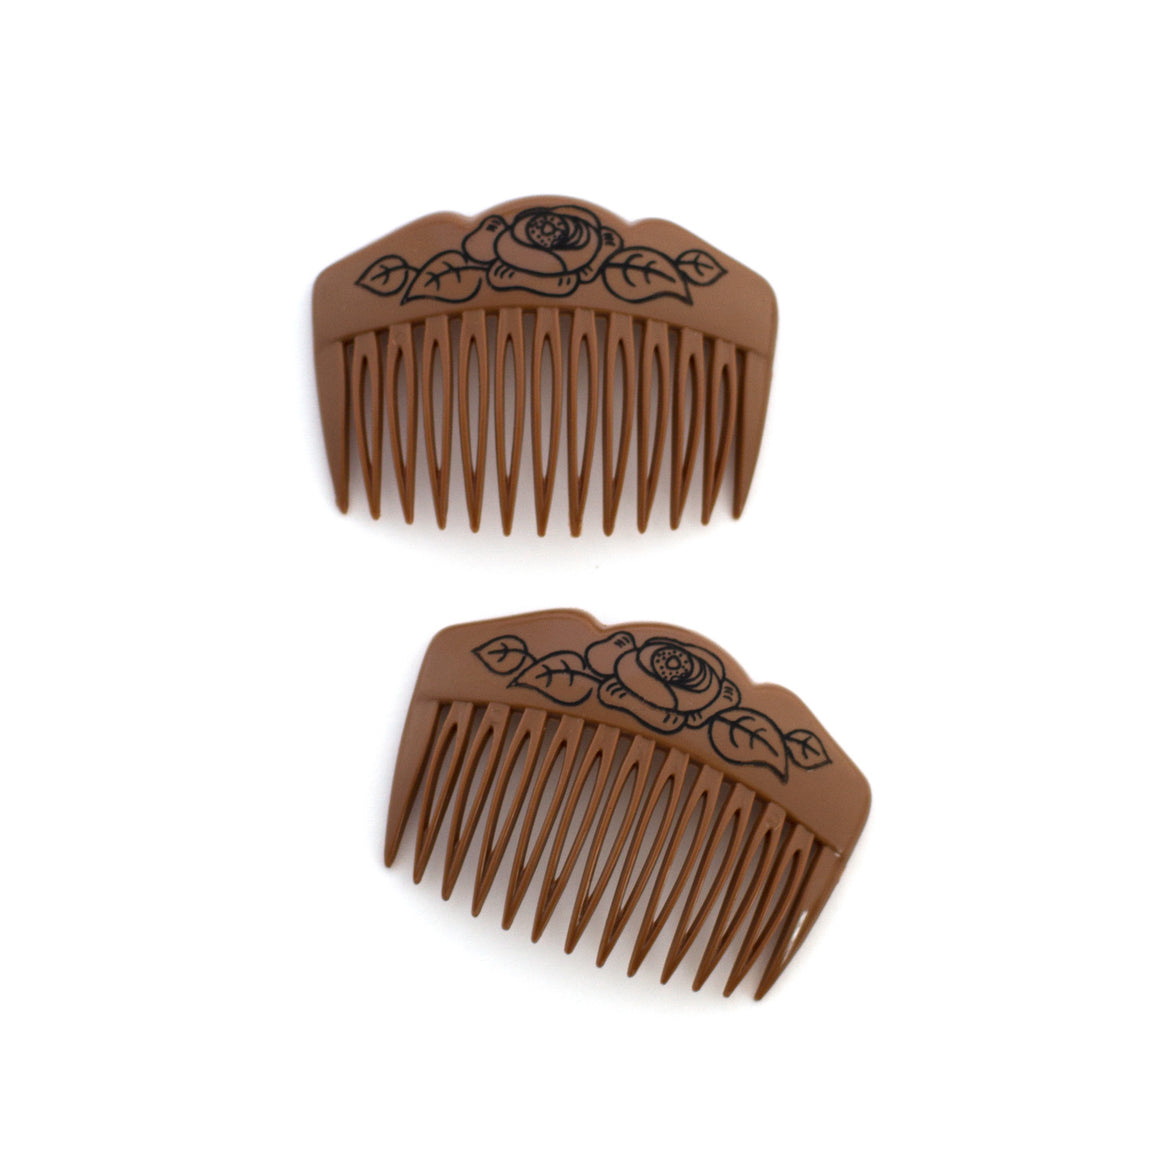 Vintage Brown Rose Combs